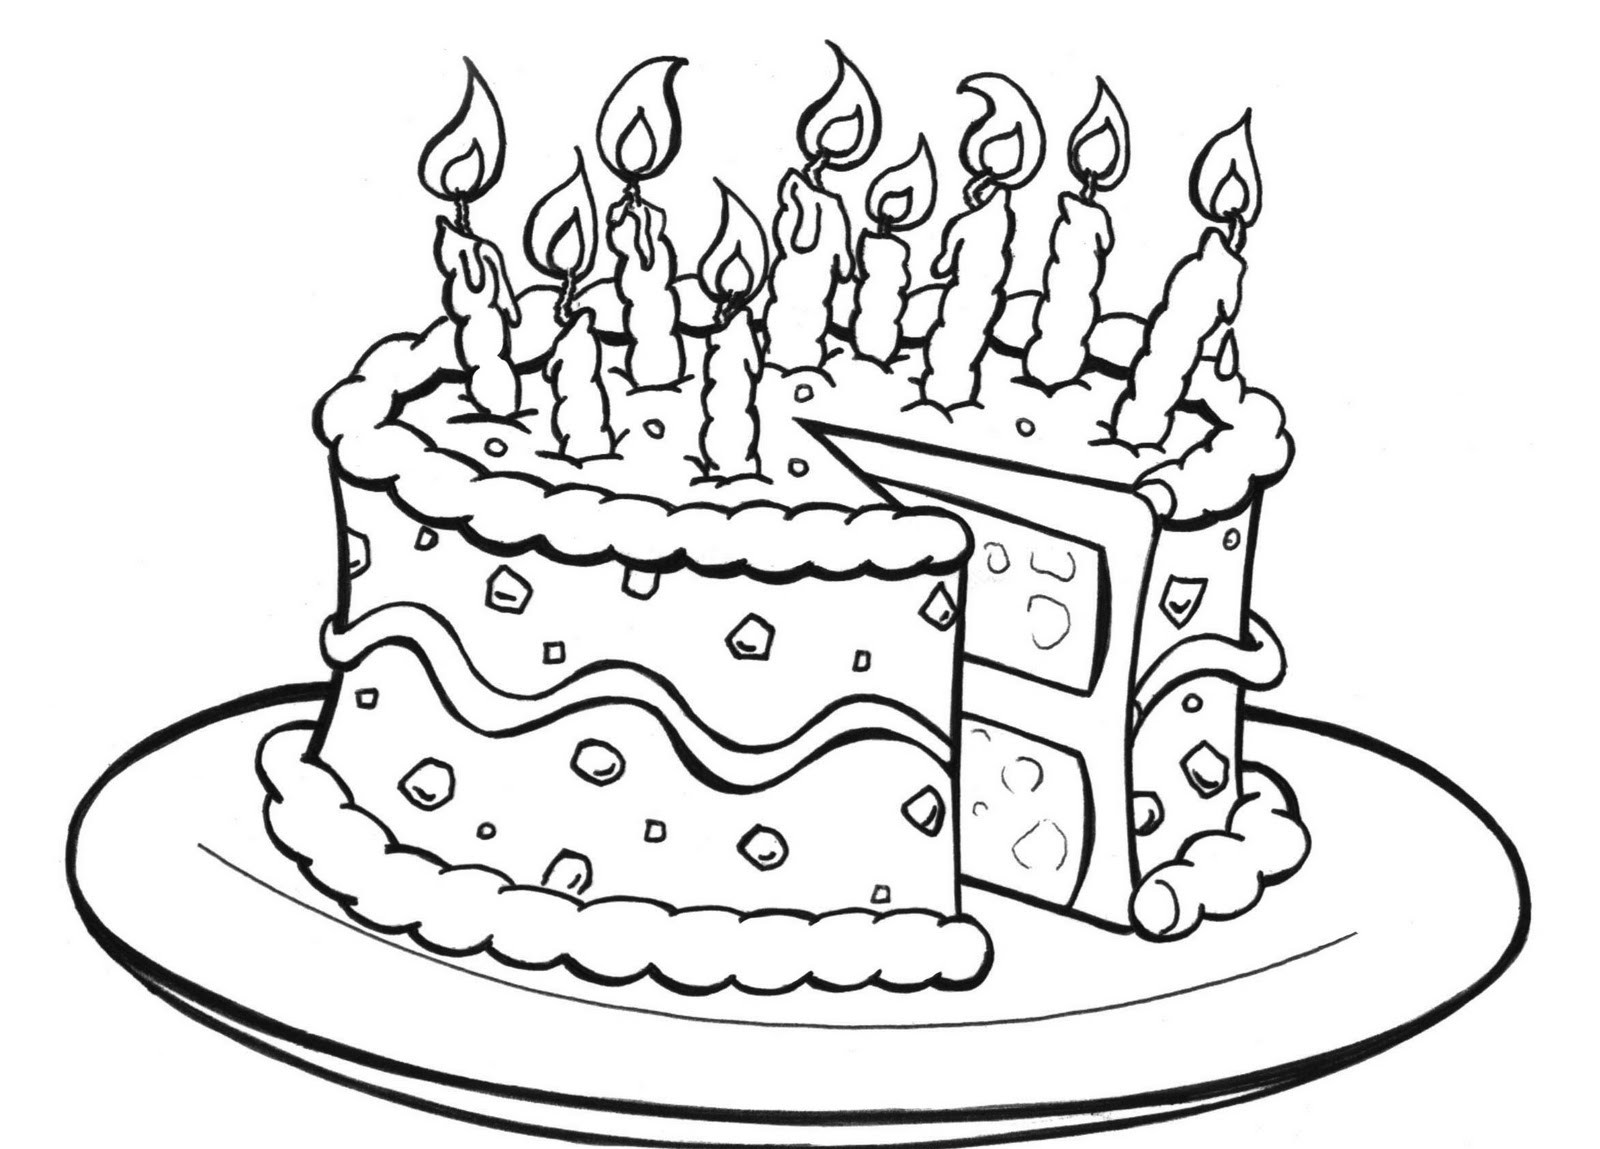 birthday coloring pages ; birthday-cake-coloring-page-happy-birthday-cake-coloring-page-with-the-groom-typically-offering-the-cake-to-the-bride-first-eleegance